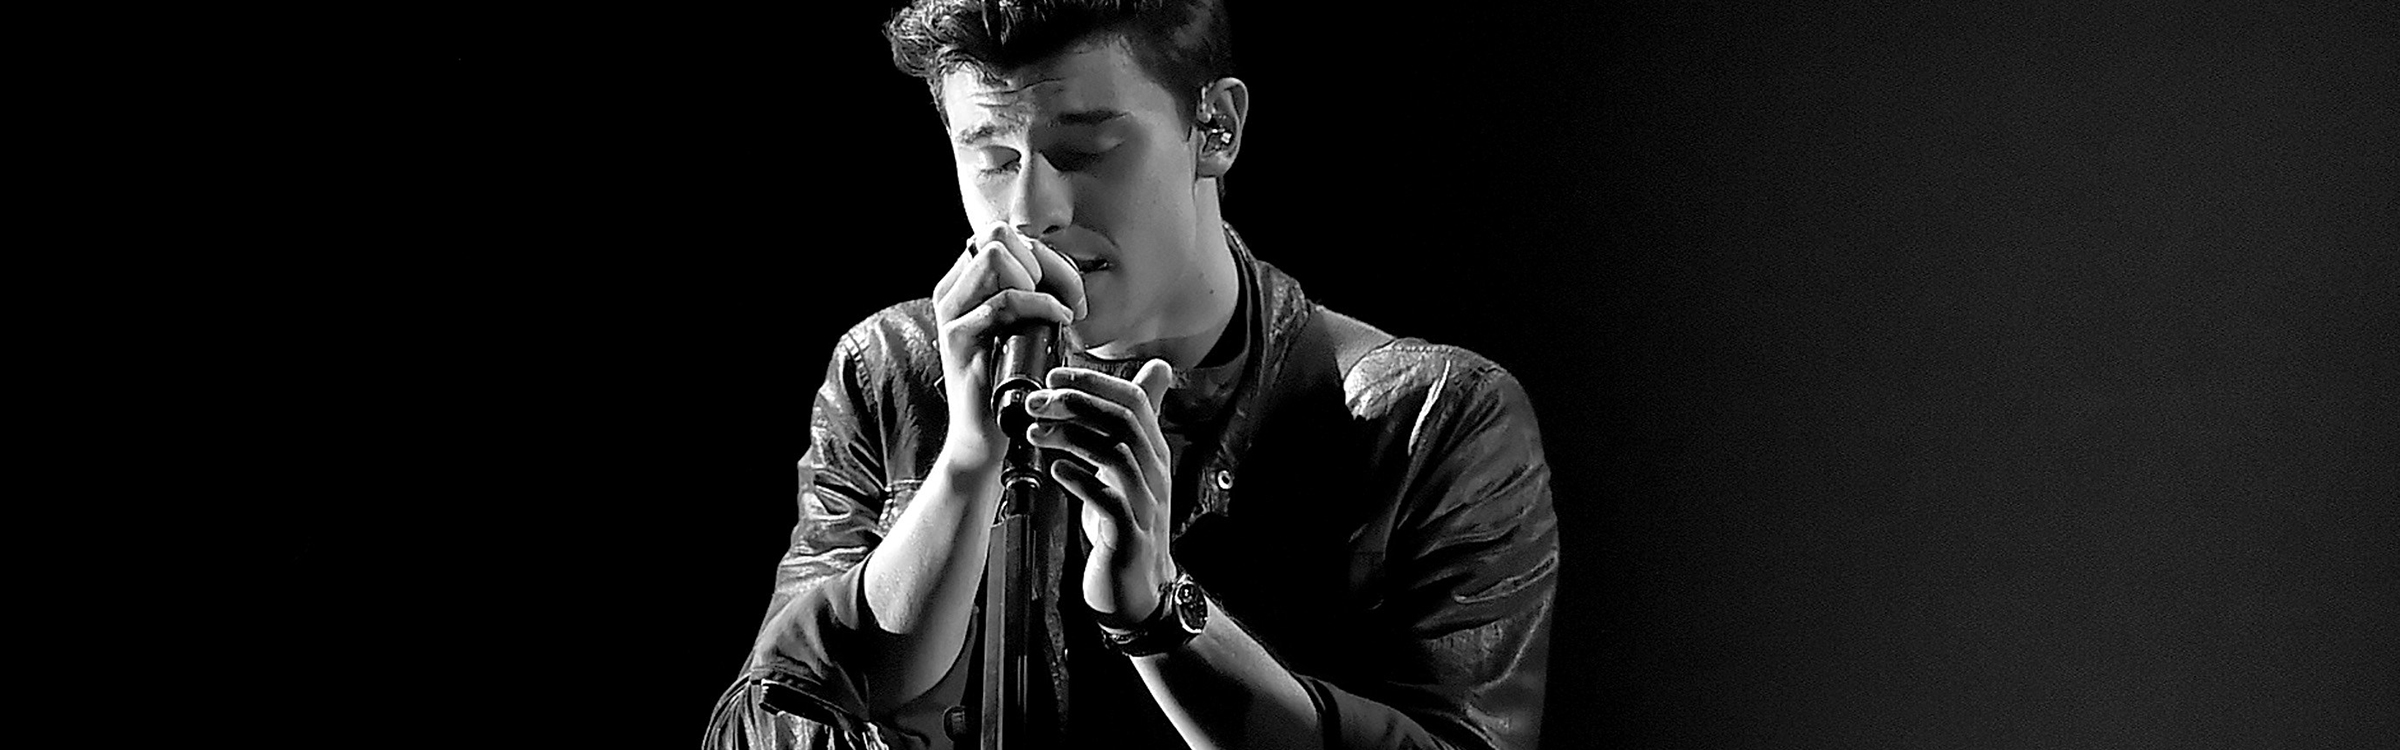 Shawnunplugged header